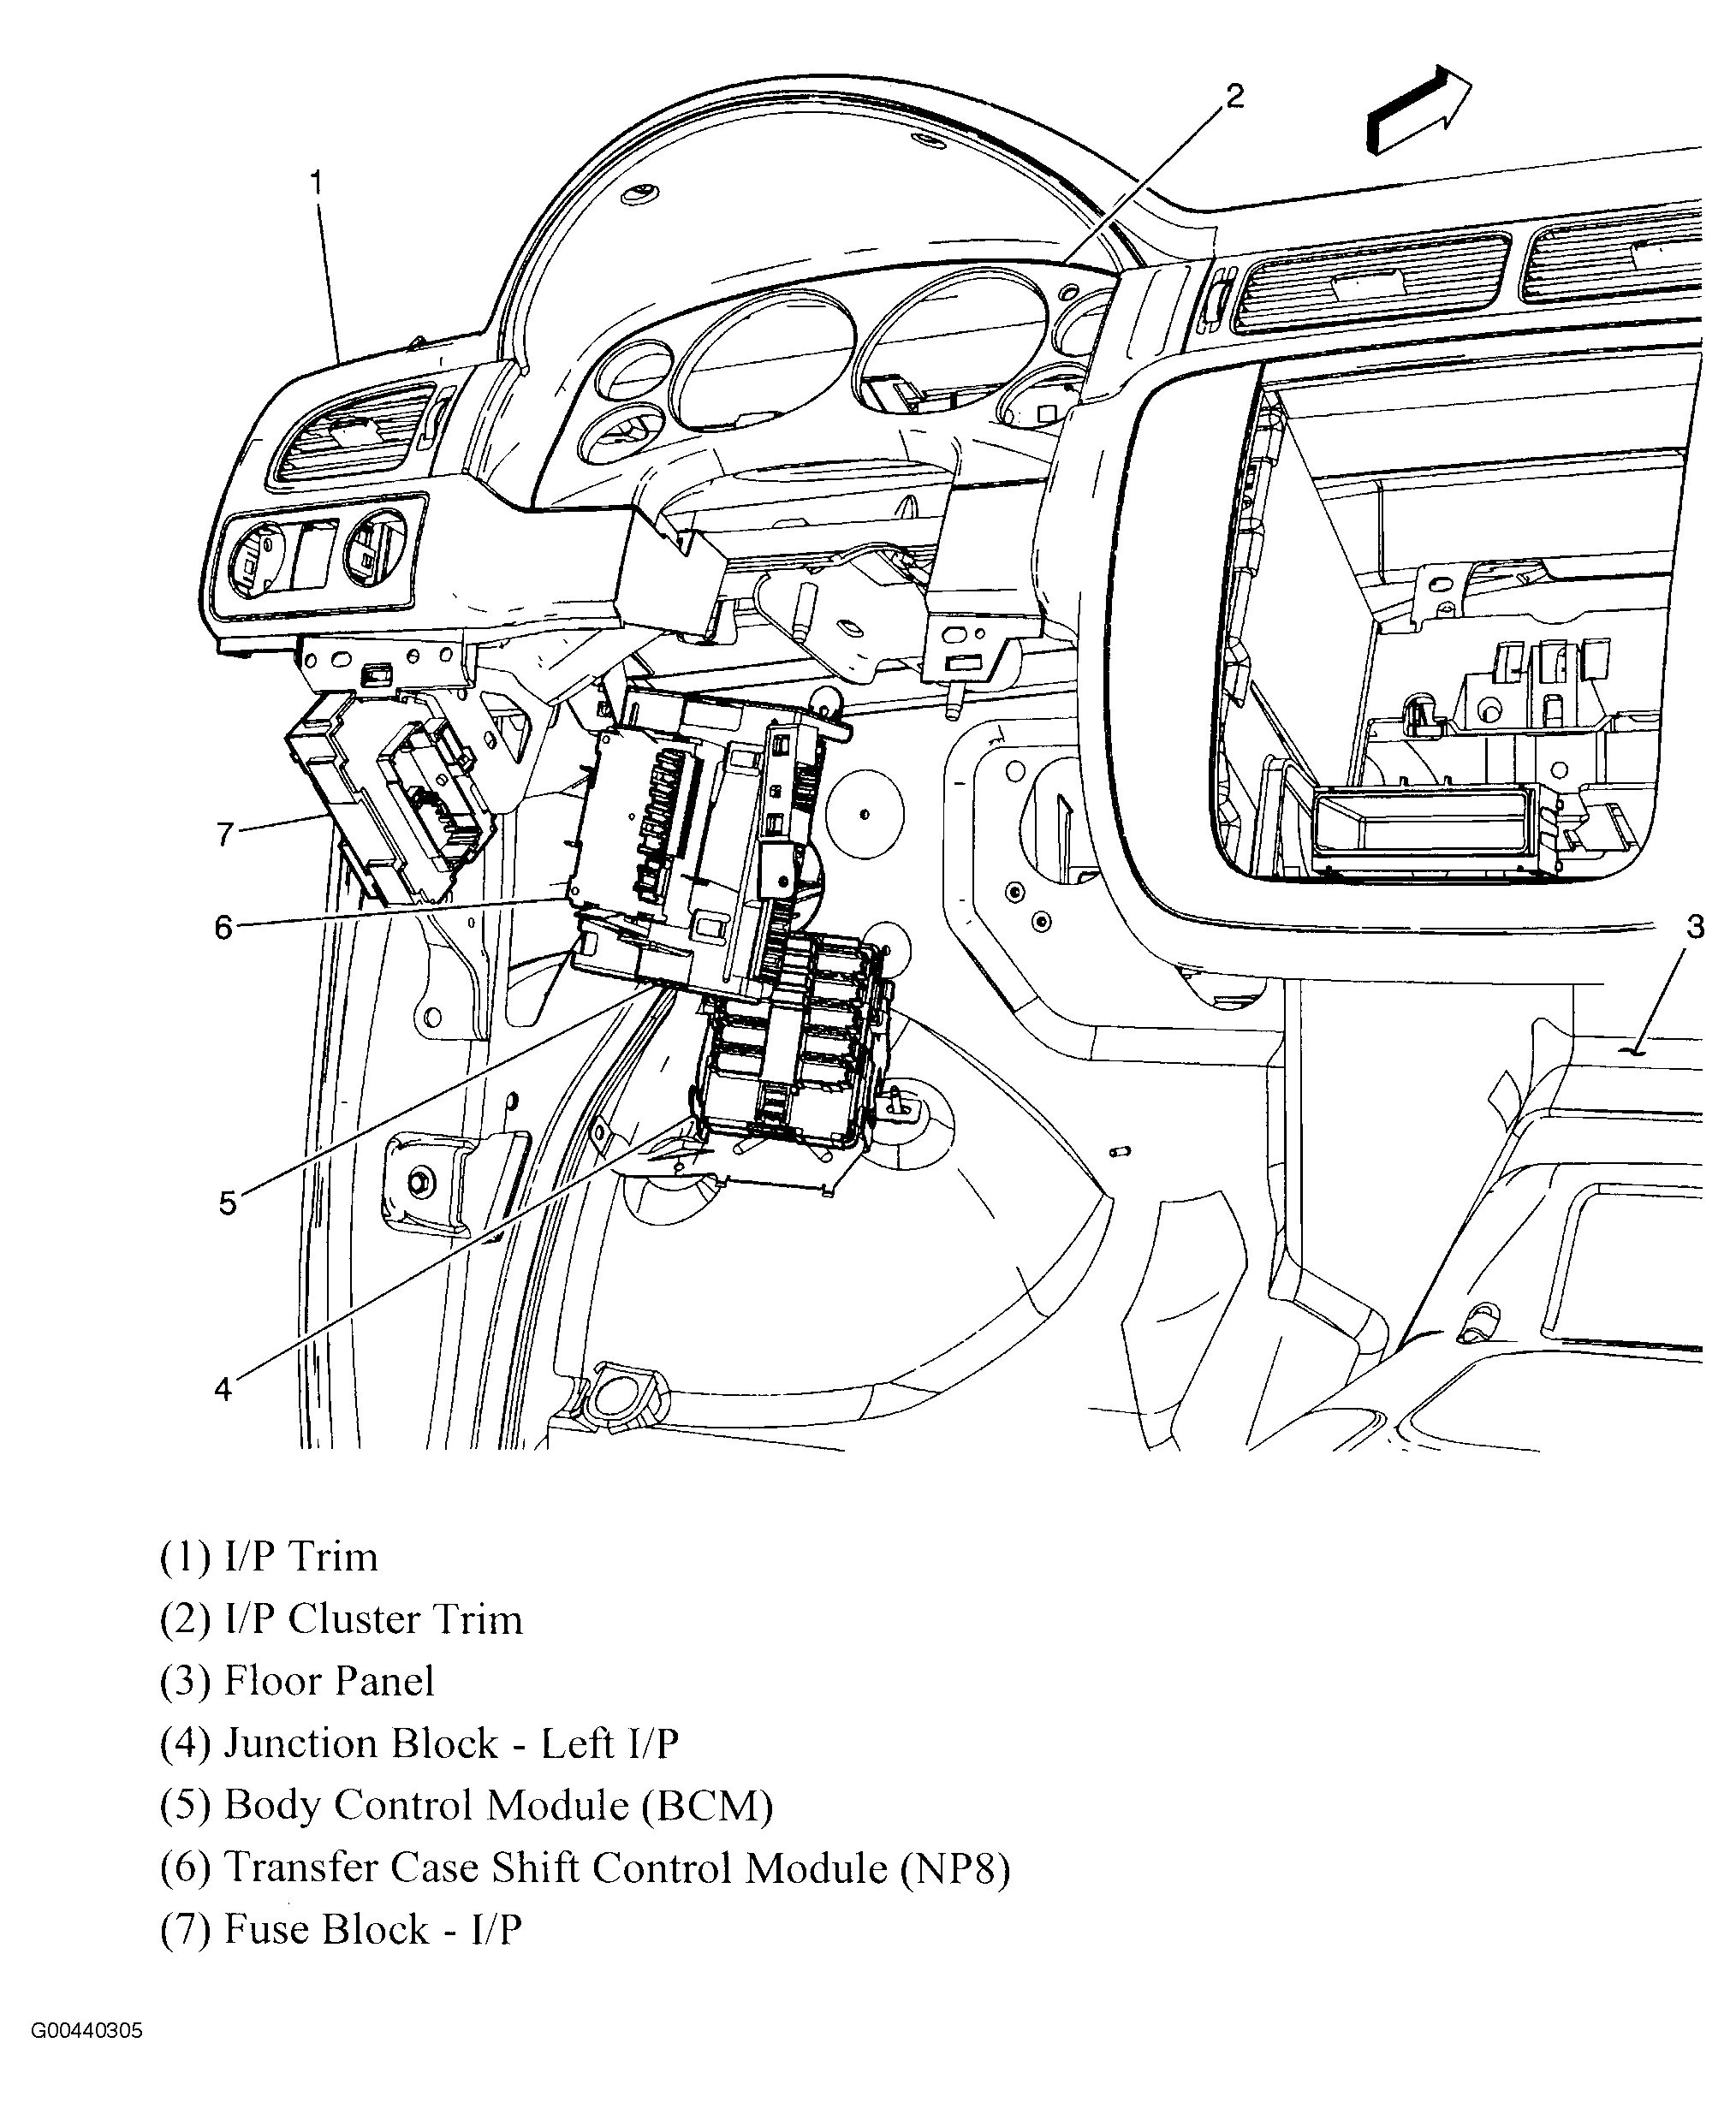 2002 Gmc Envoy Engine Diagram Great Design Of Wiring For 2005 Electric Seat Free Transmission